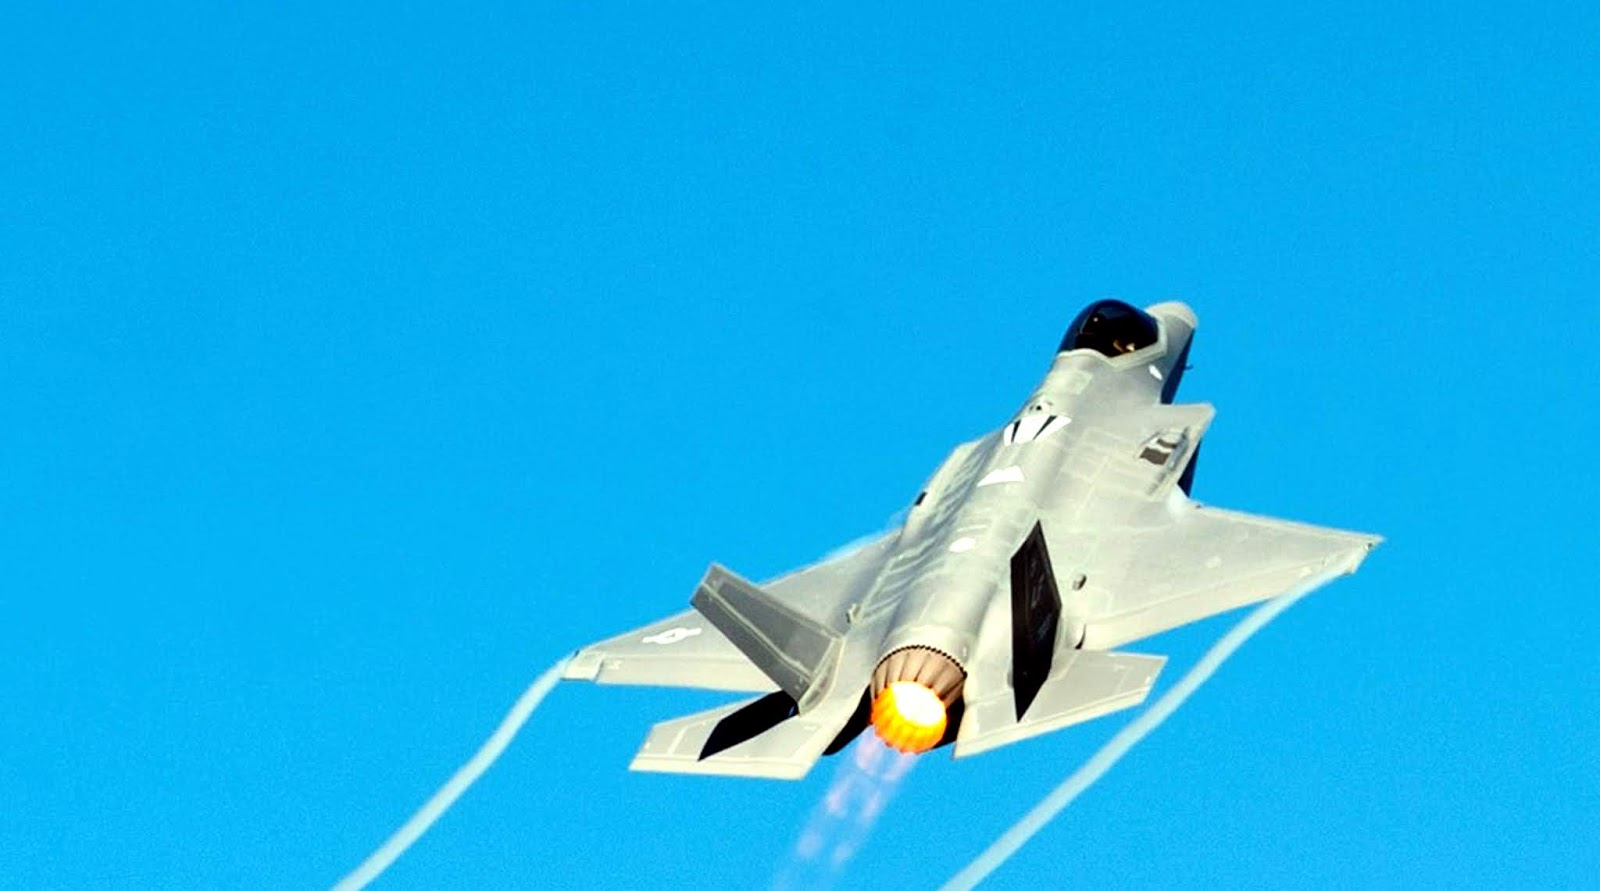 F-35A of USAF on Throttle In The Sky